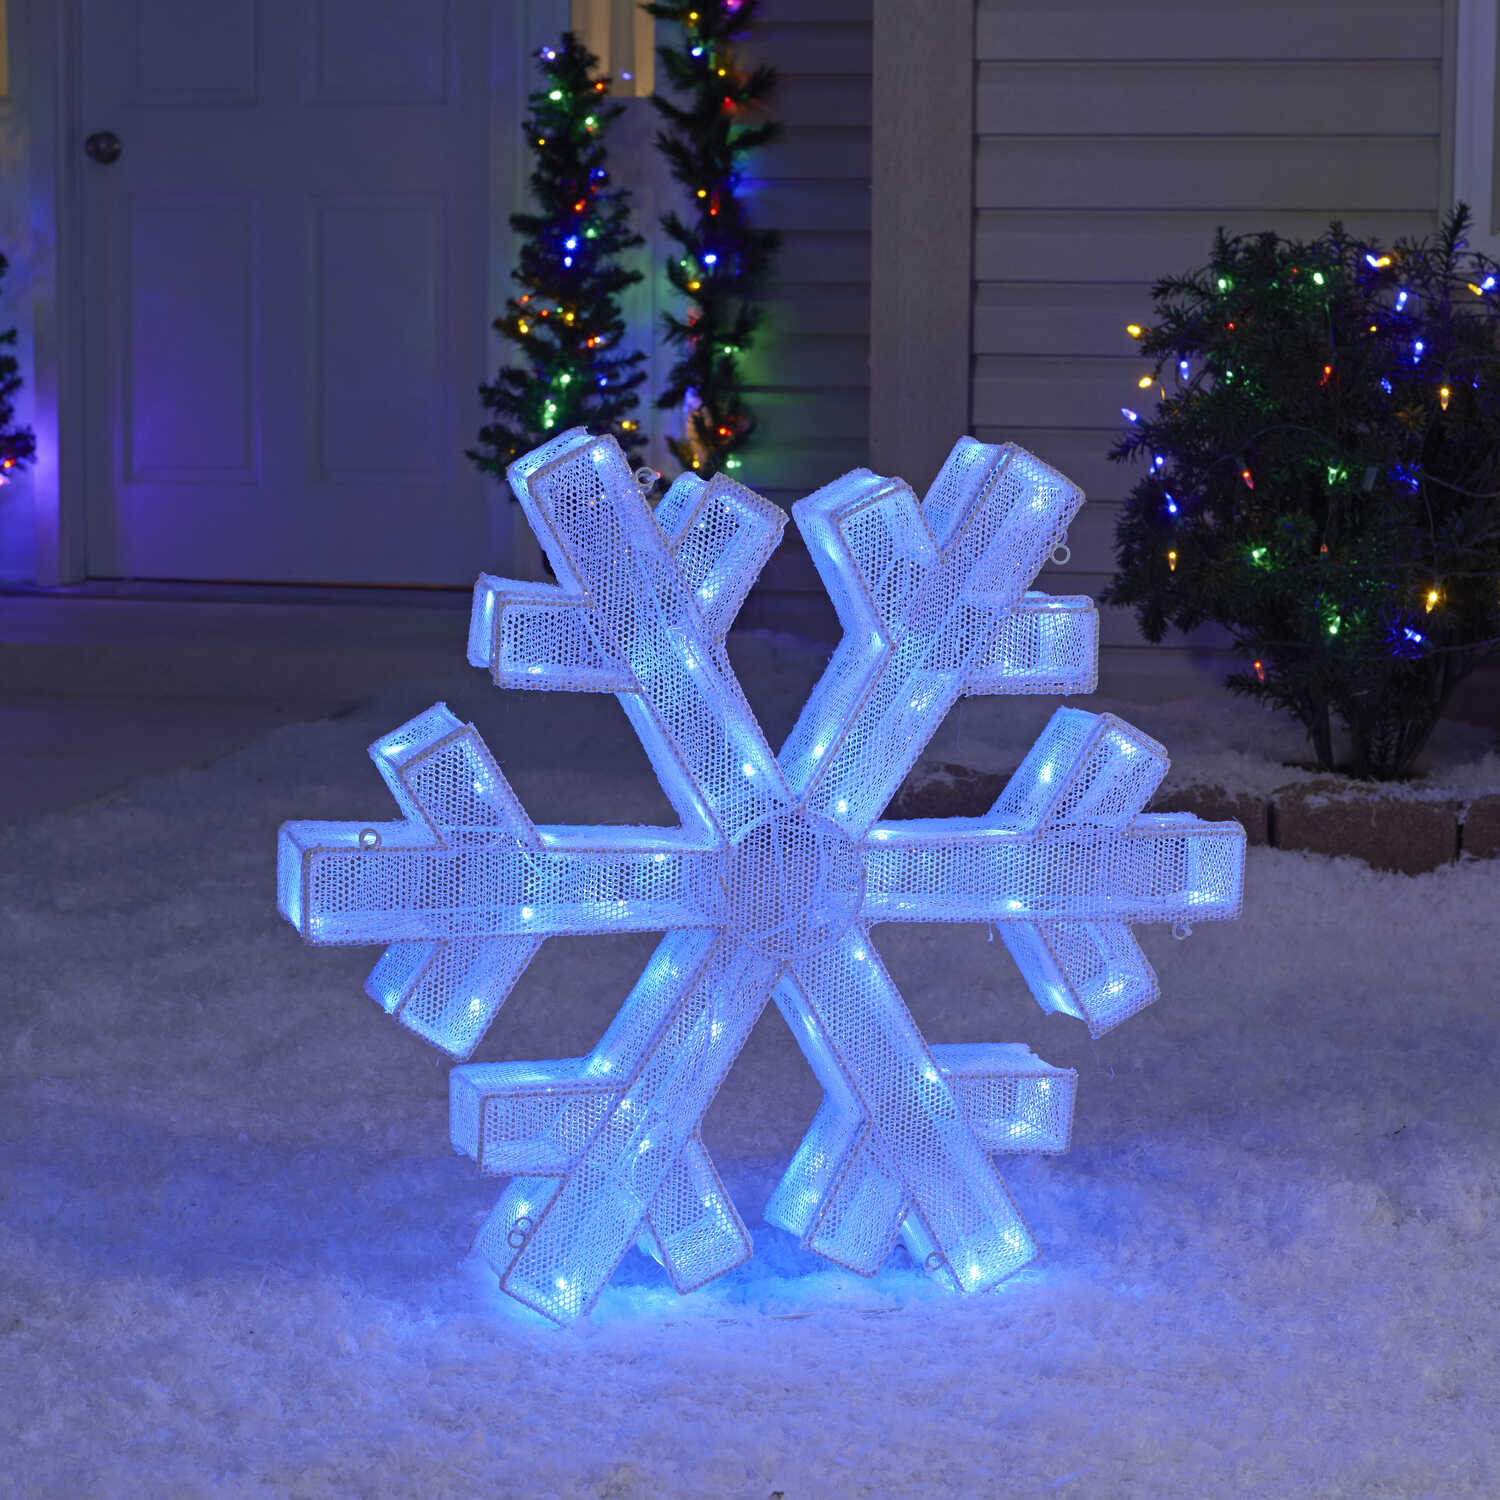 Sylvania  Illuminet  Snowflake  LED Yard Art  White  Mesh  1 pk